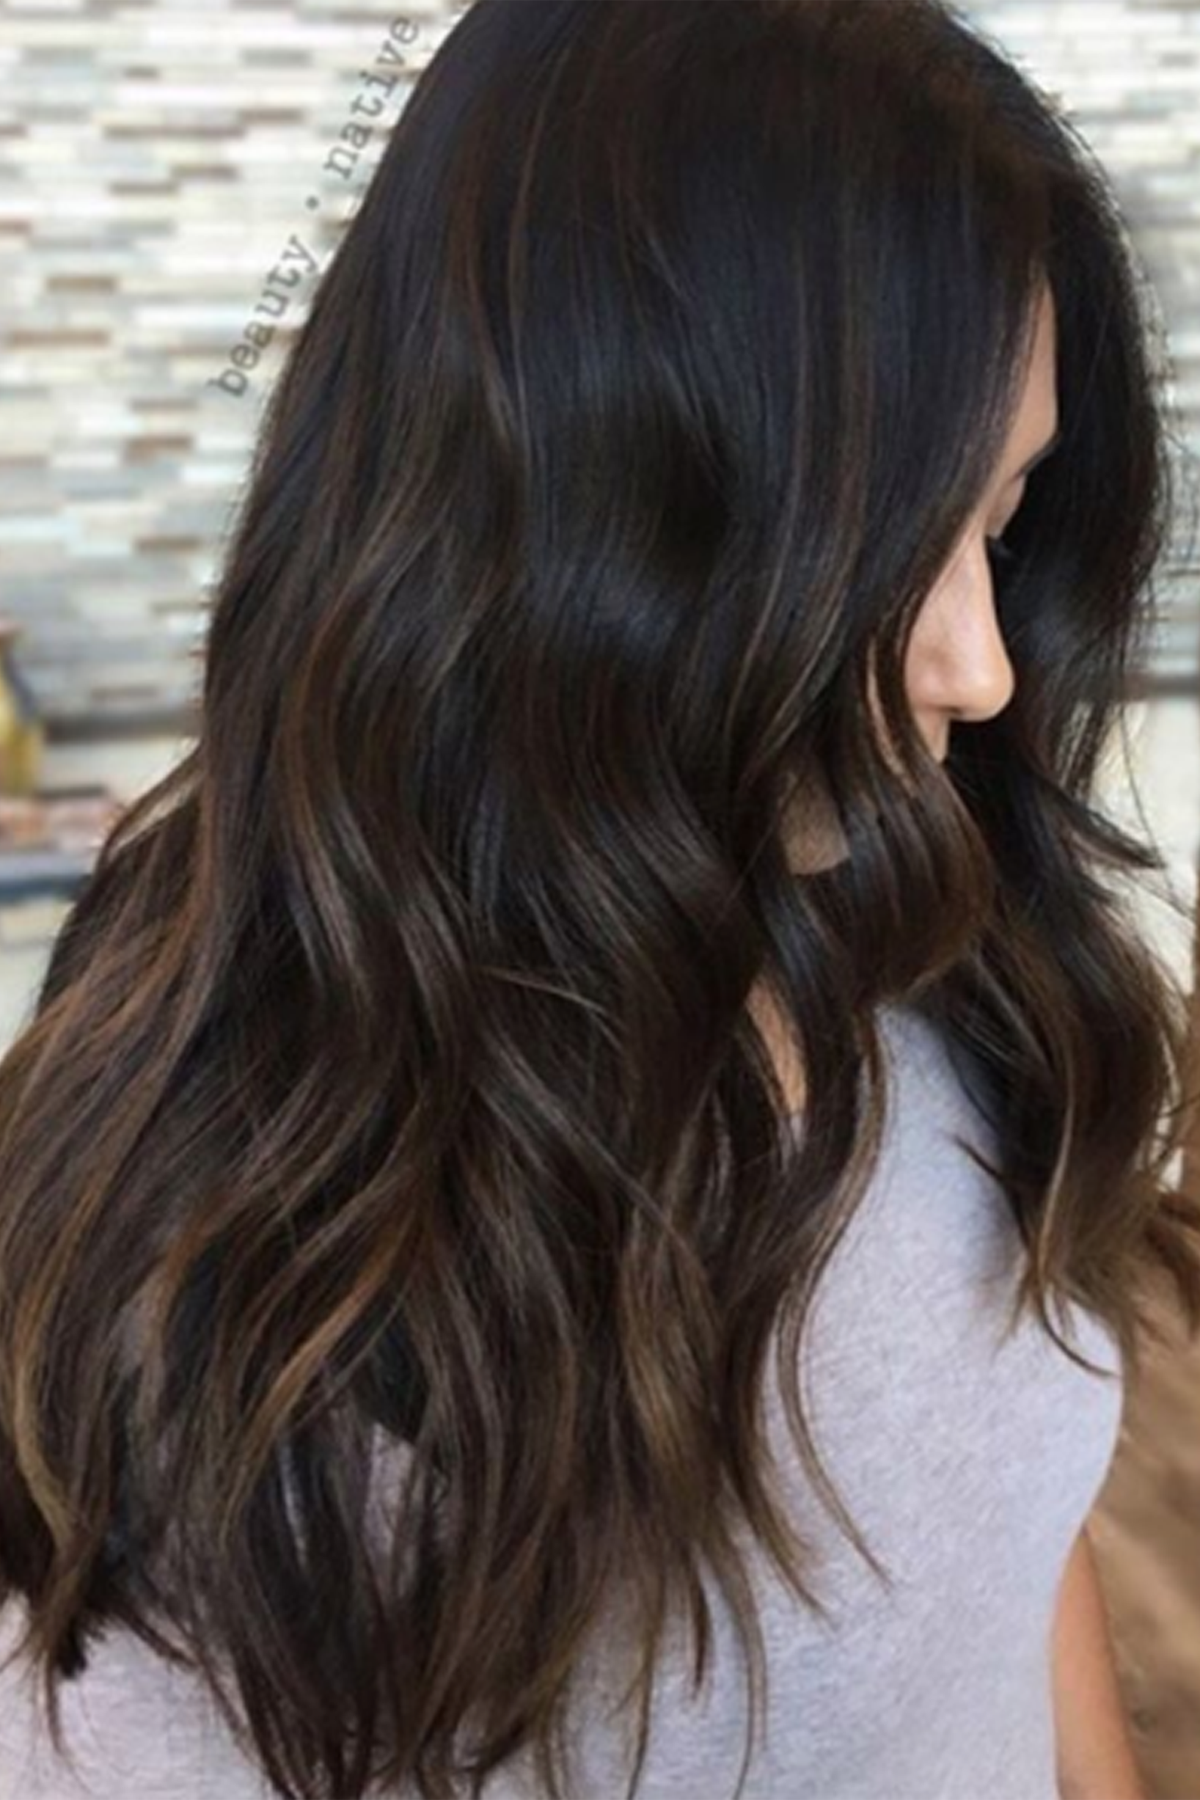 15 Hair Color Ideas and Styles for 2018